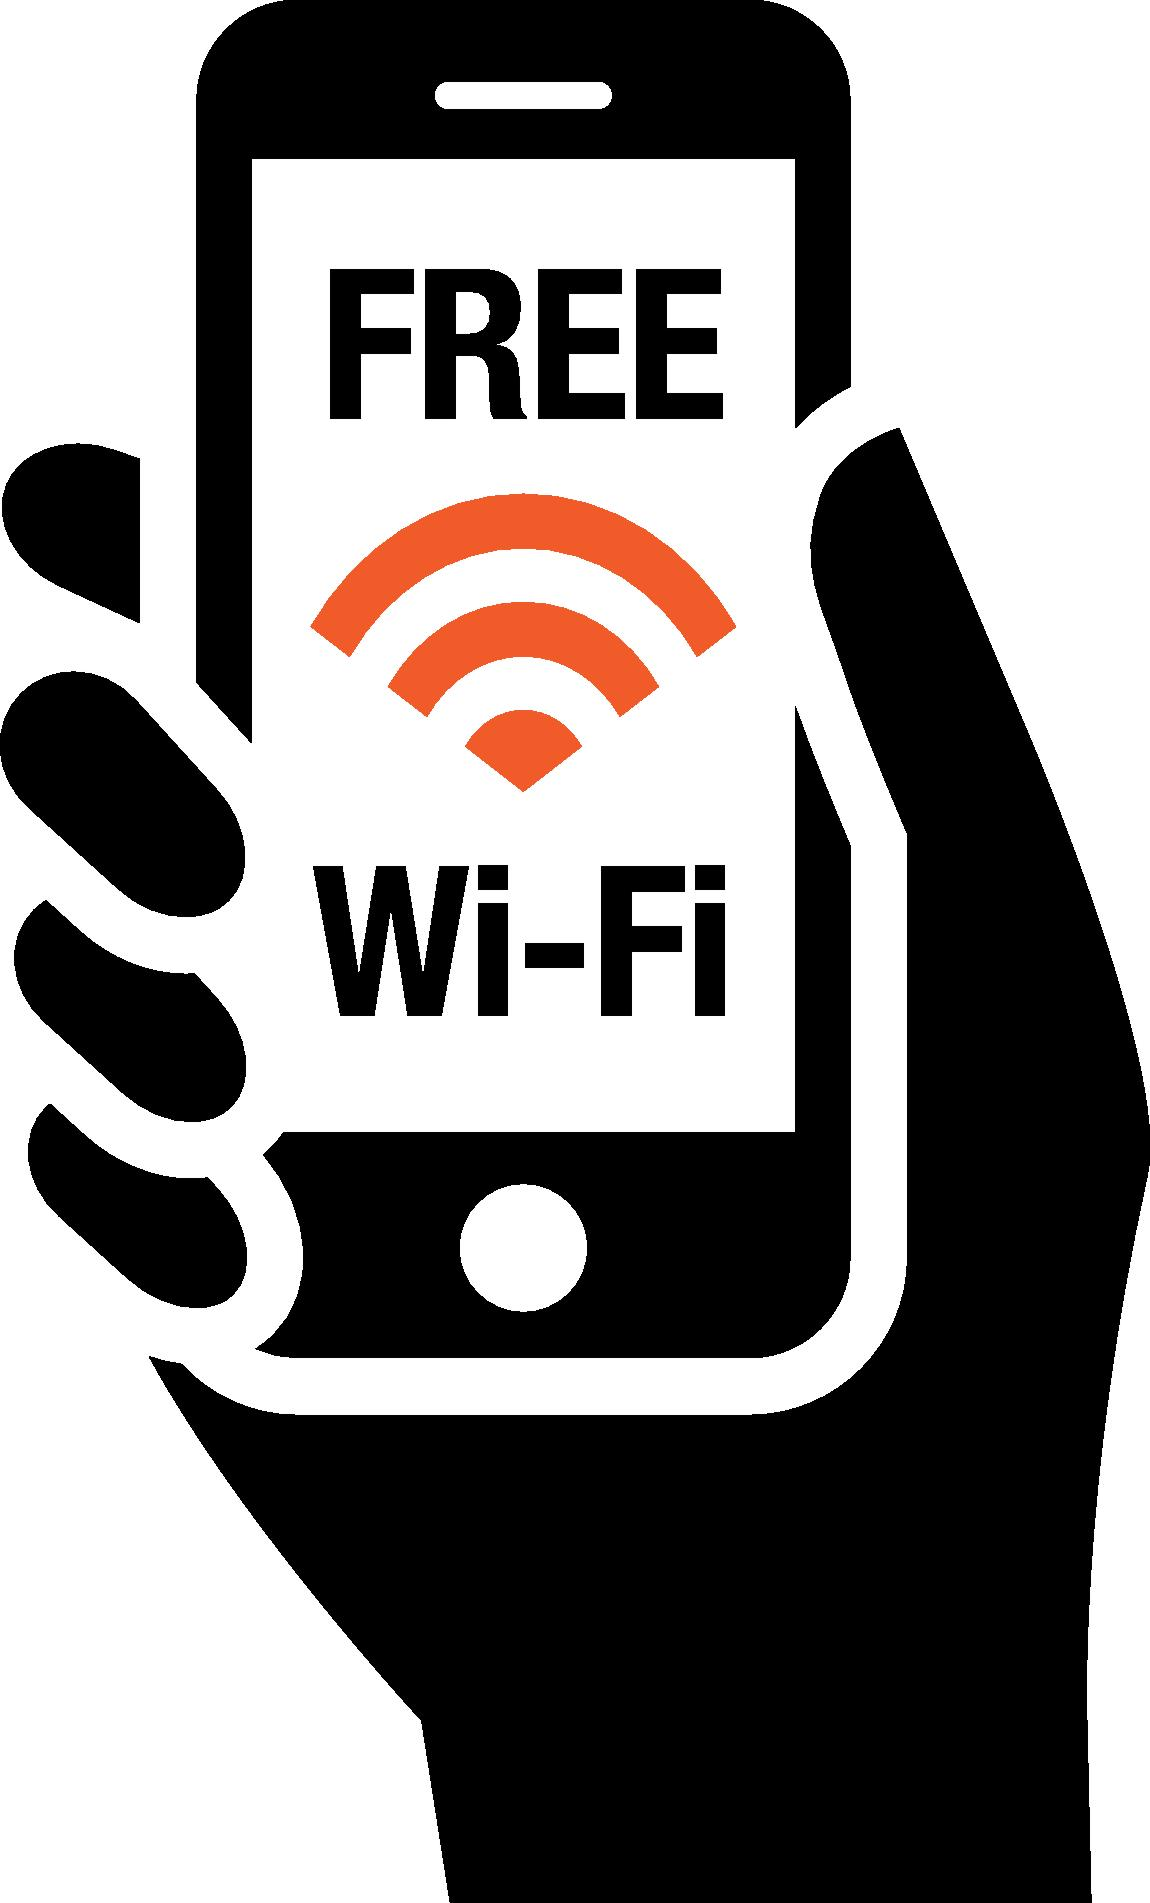 Free Wifi, Download Free Clip Art, Free Clip Art on Clipart.